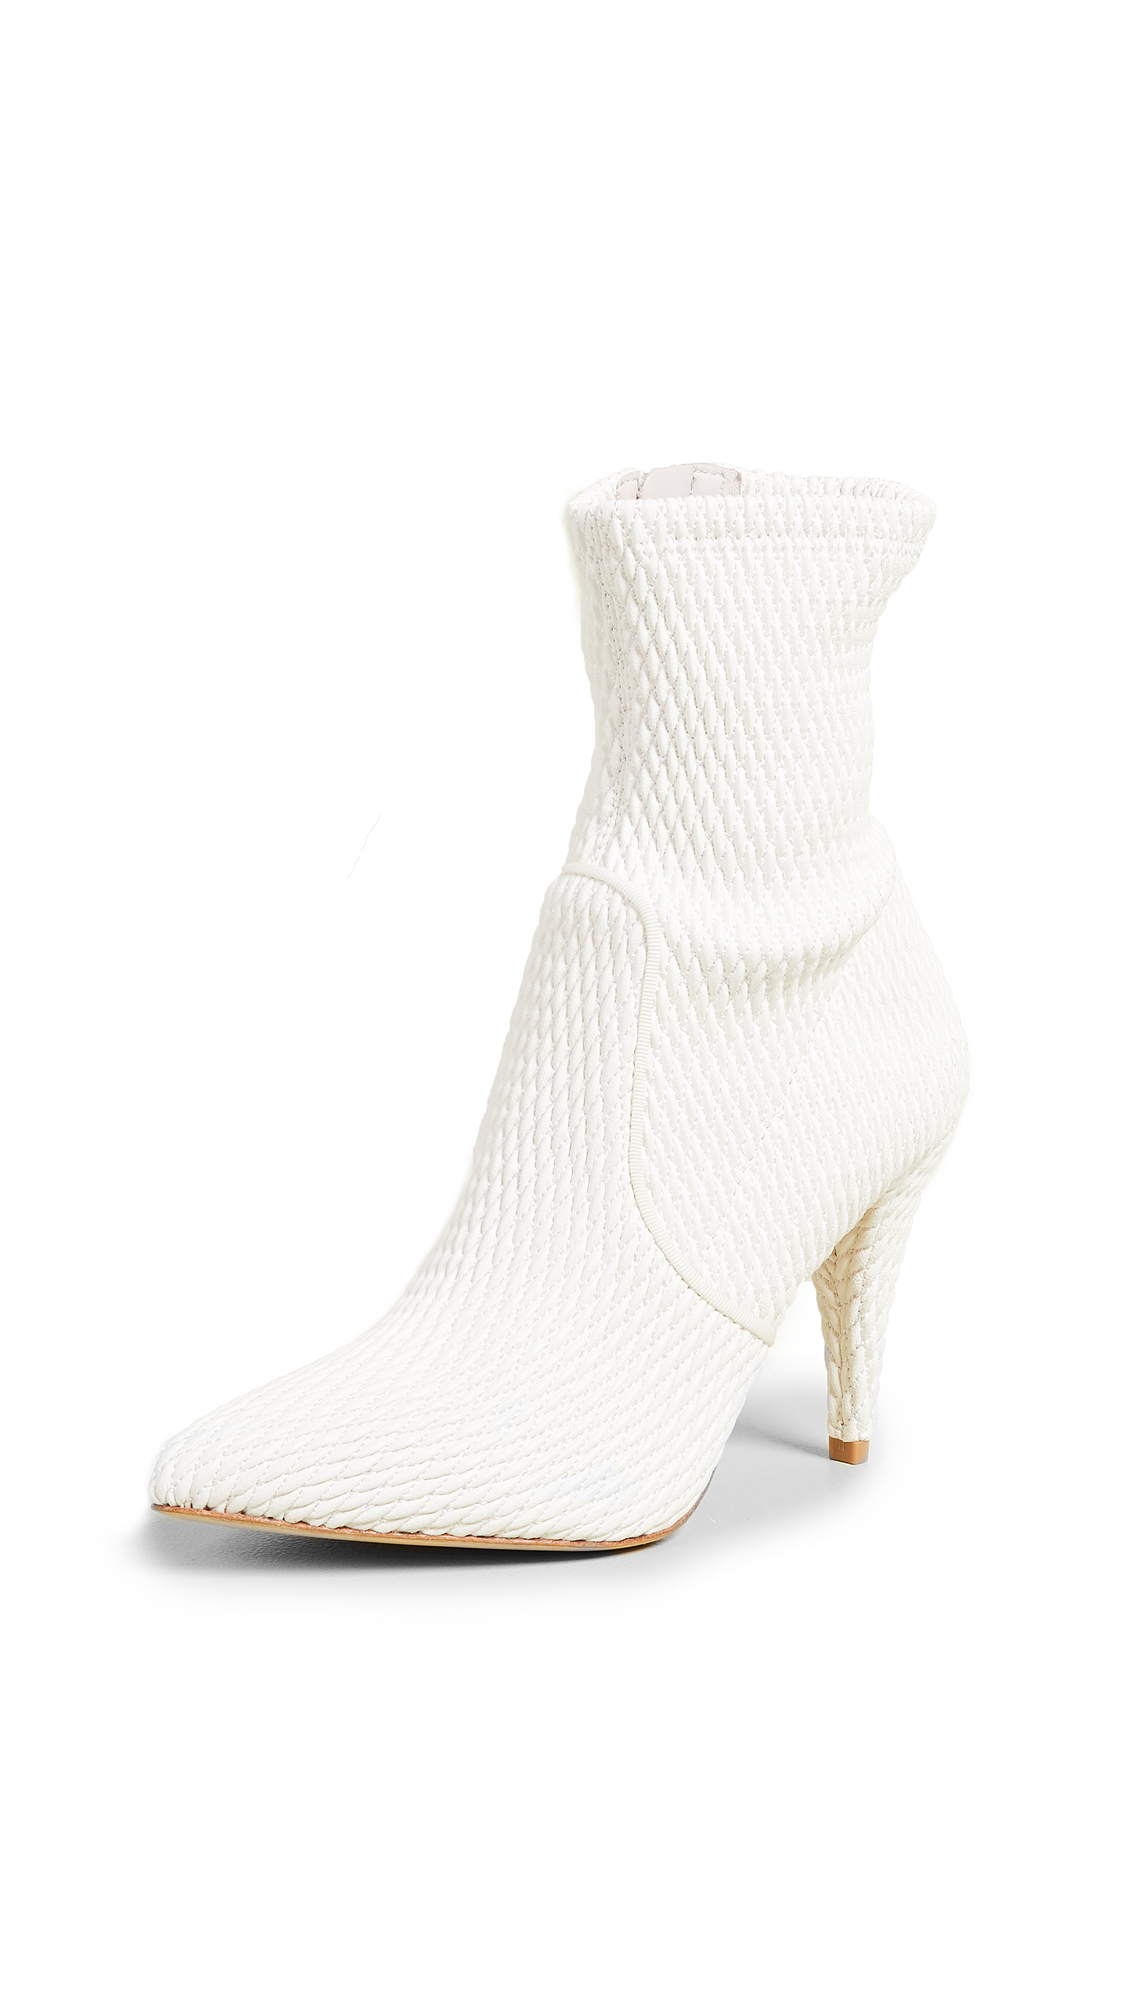 alice + olivia Hedde Stretch Pleather Booties - White